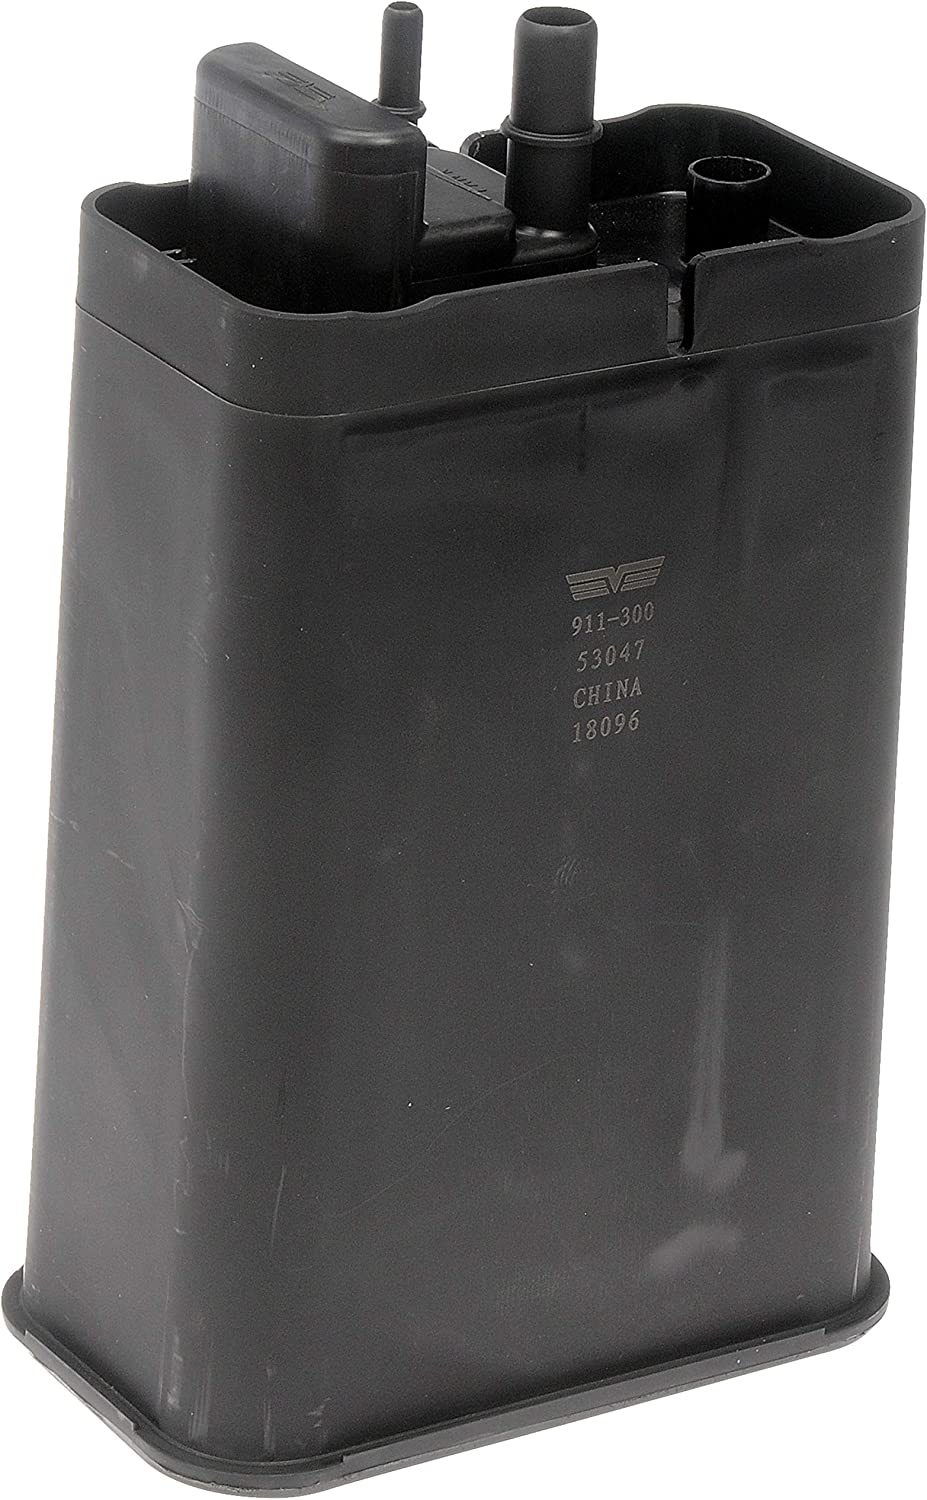 Dorman 911-300 Evaporative Emissions Gifts For Charcoal Wholesale Canister Sele